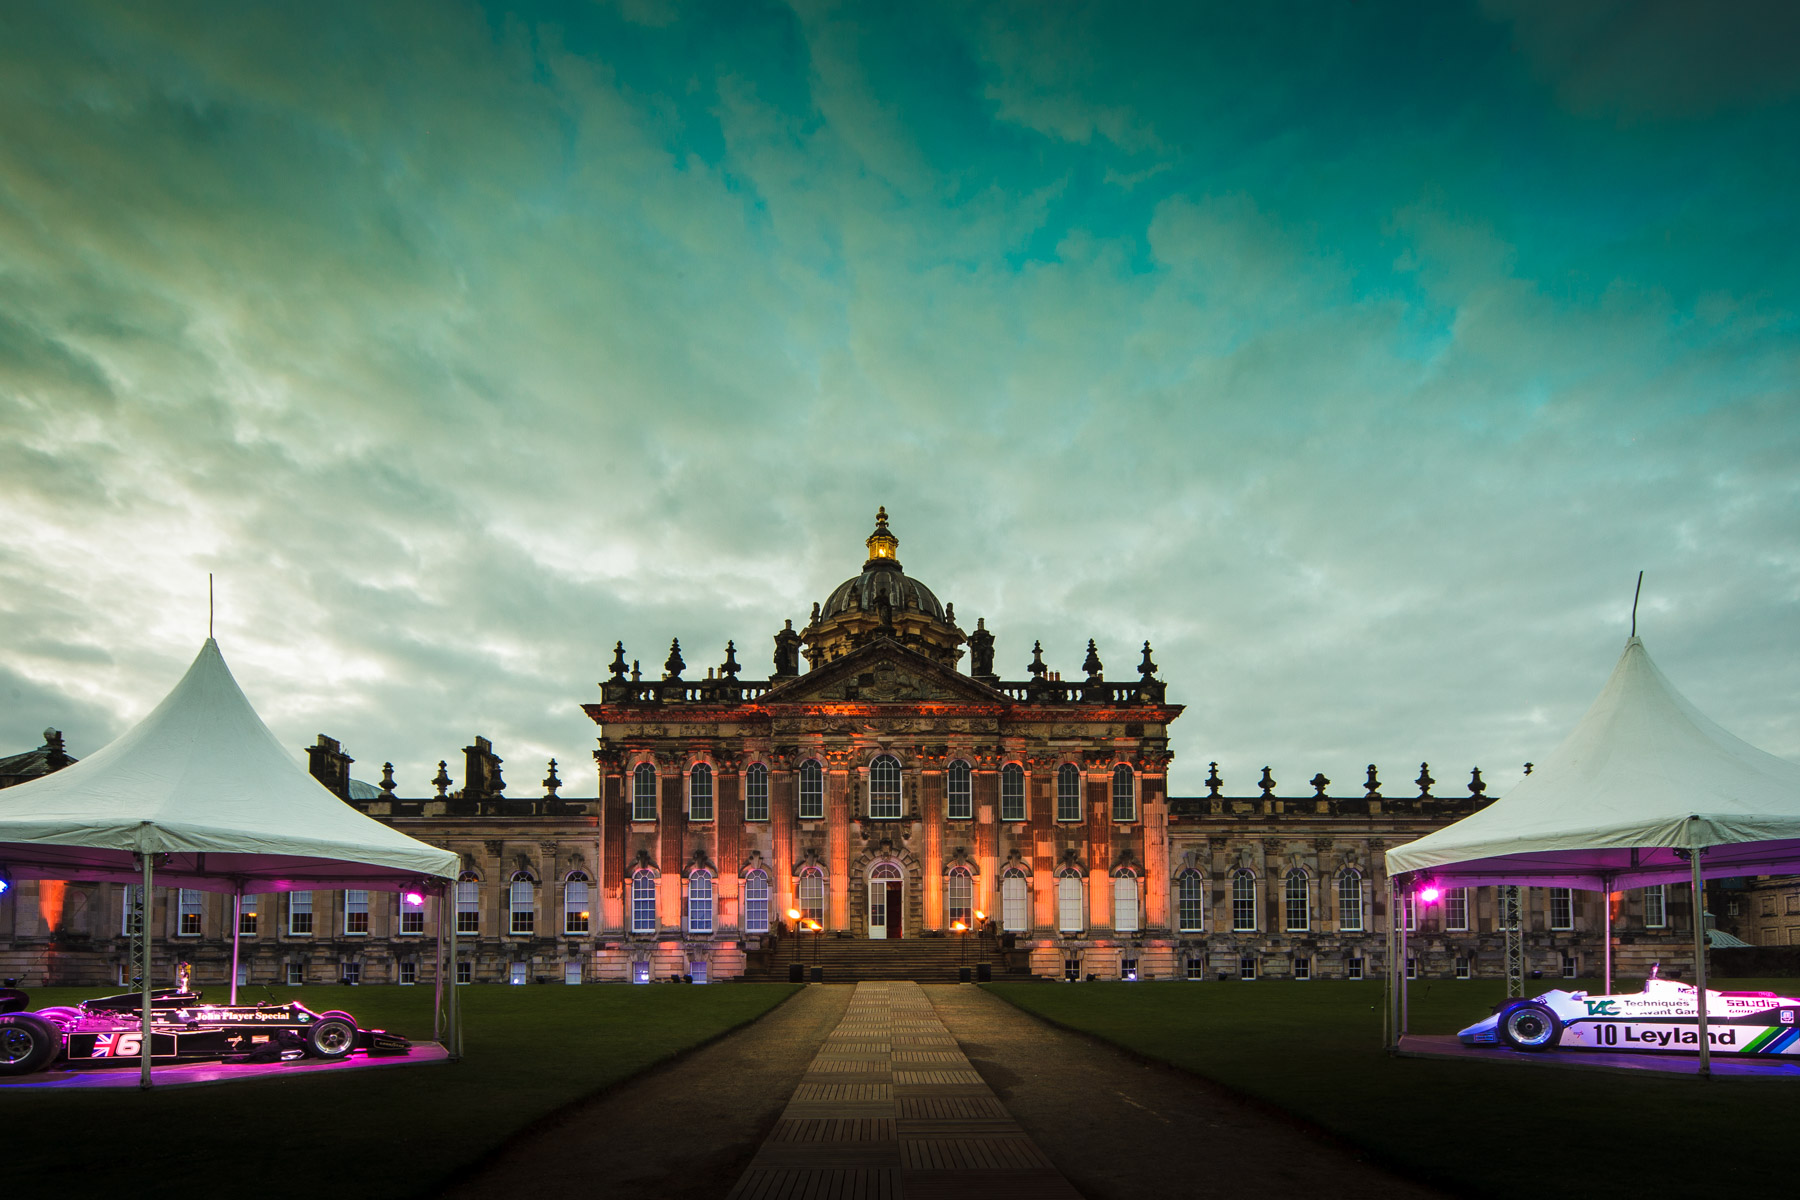 F1_Castle Howard